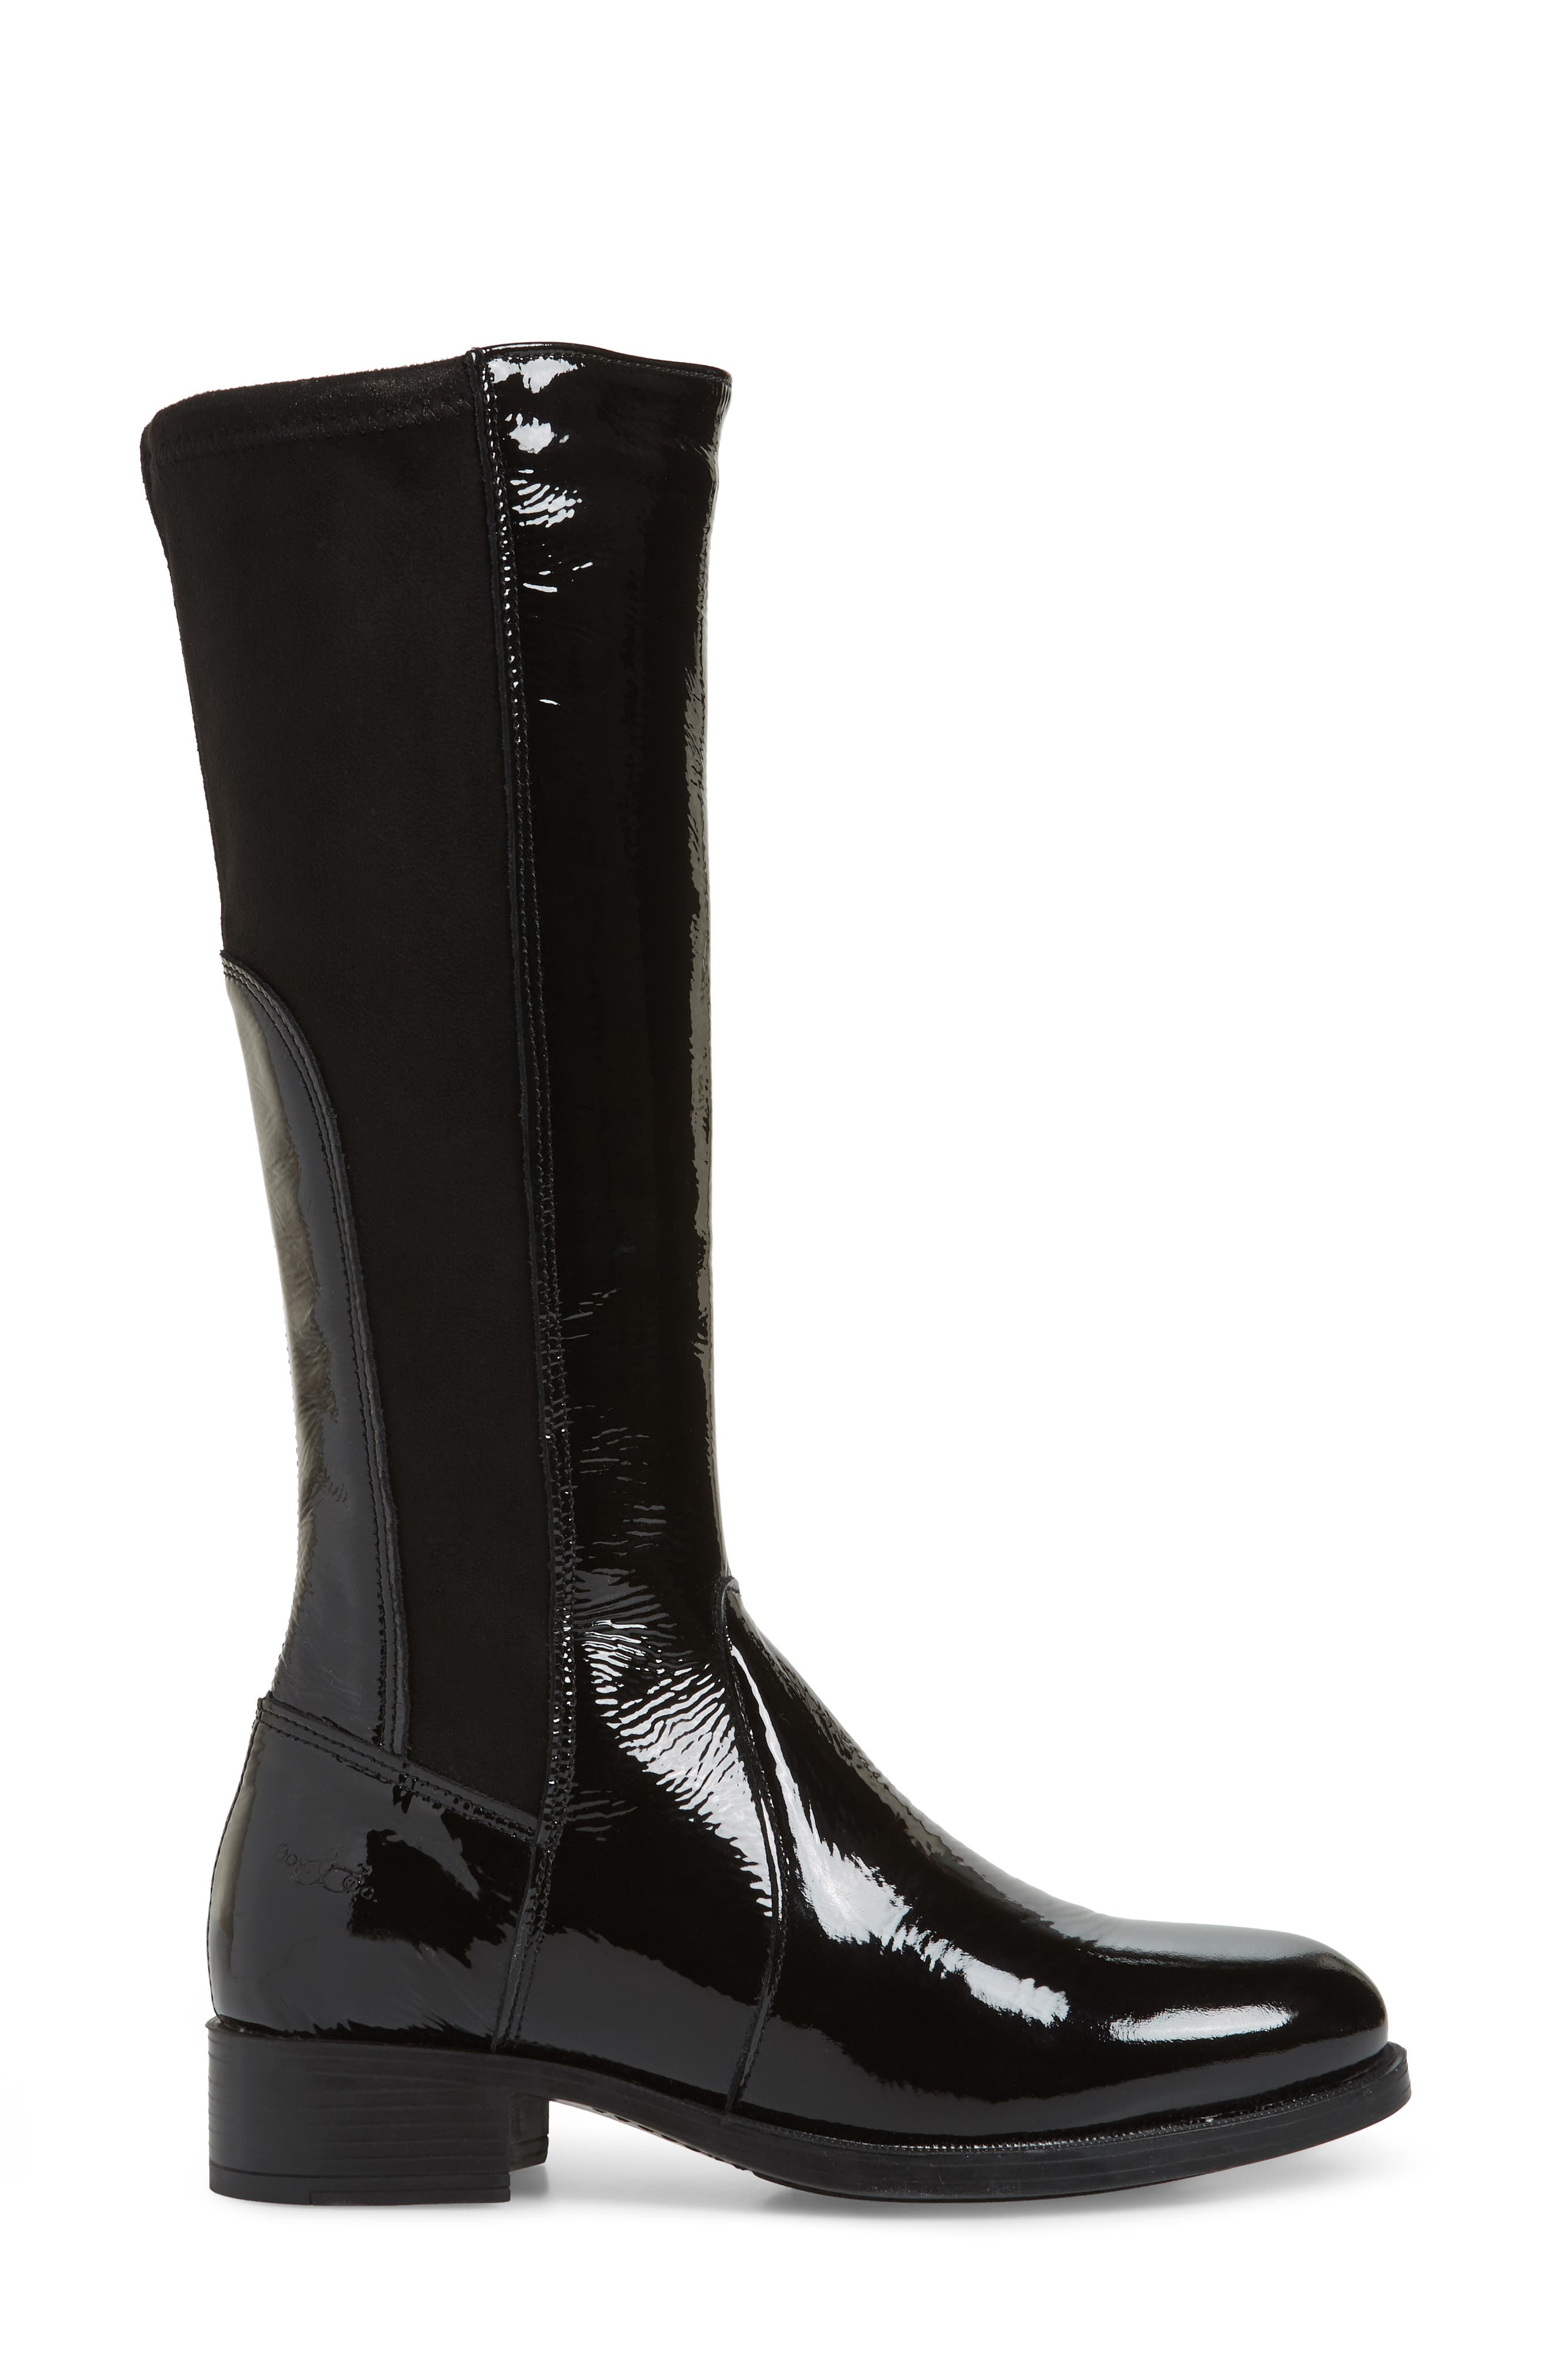 BOS. & CO., Brook Waterproof Knee High Boot, Alternate thumbnail 3, color, BLACK PATENT LEATHER